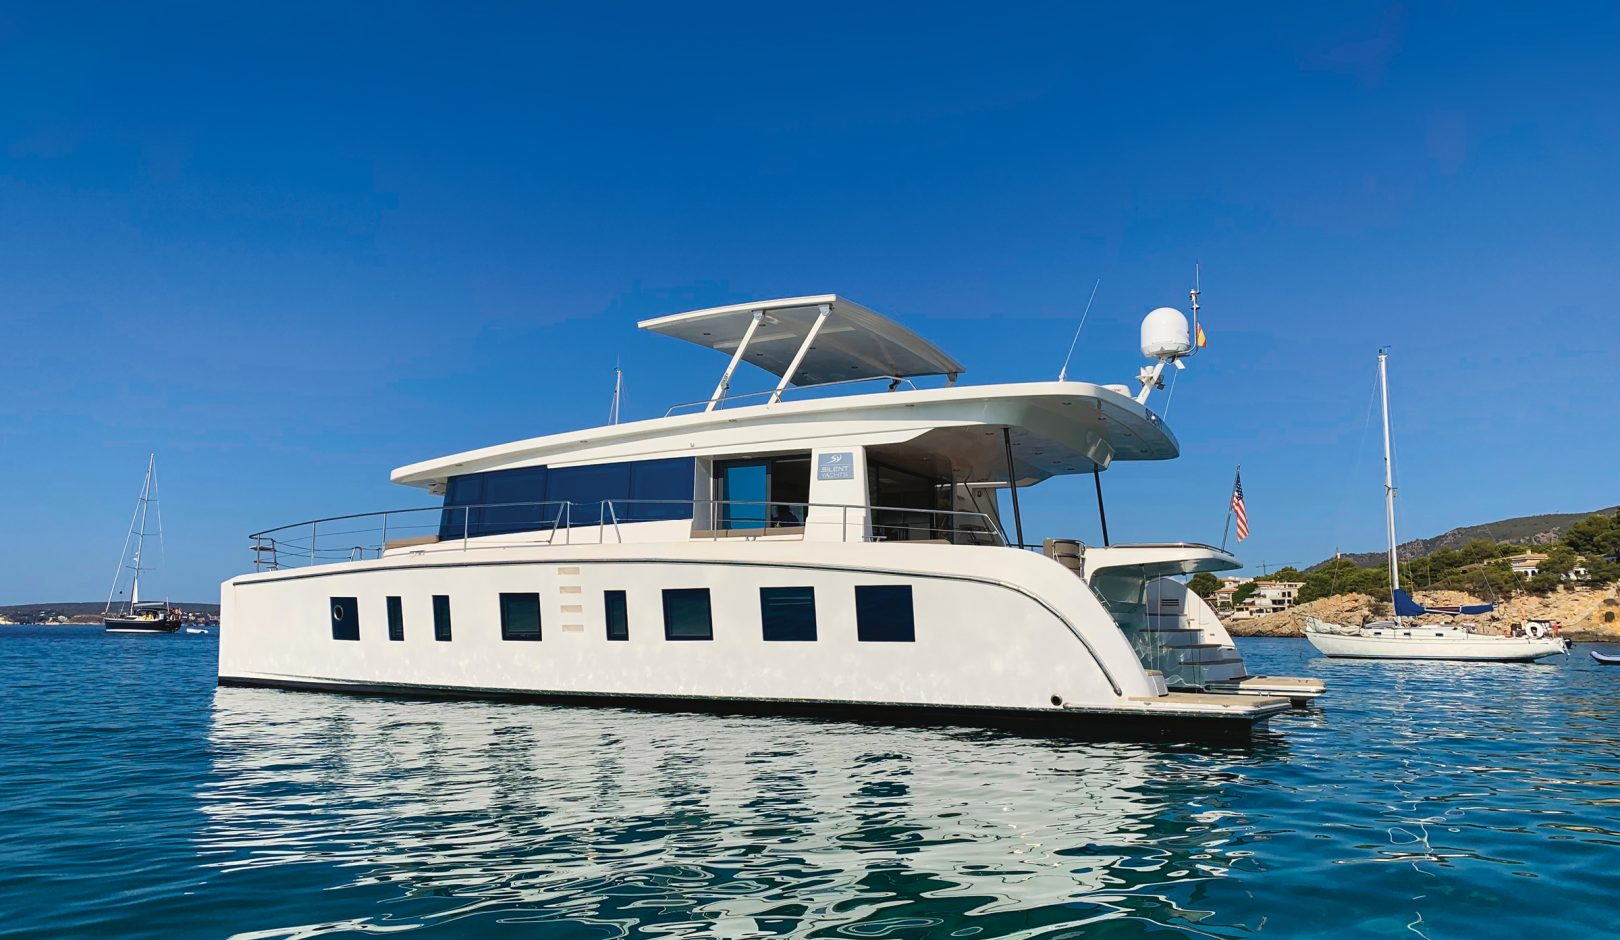 Silent Yachts 55: Liveaboard test of this future-proof electric catamaran